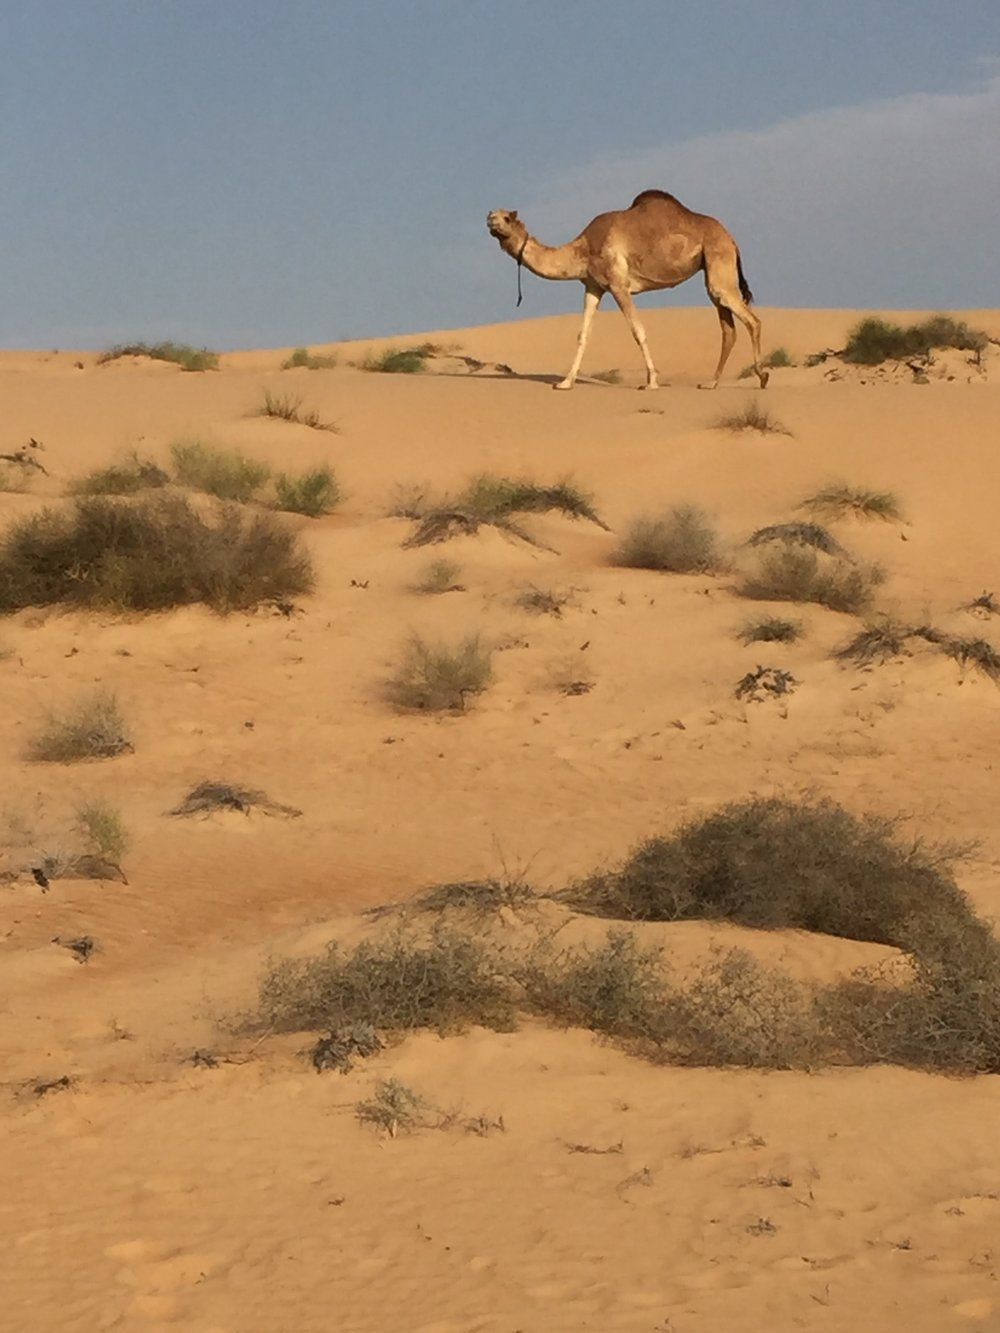 We saw lots of camels - but they are not wild.